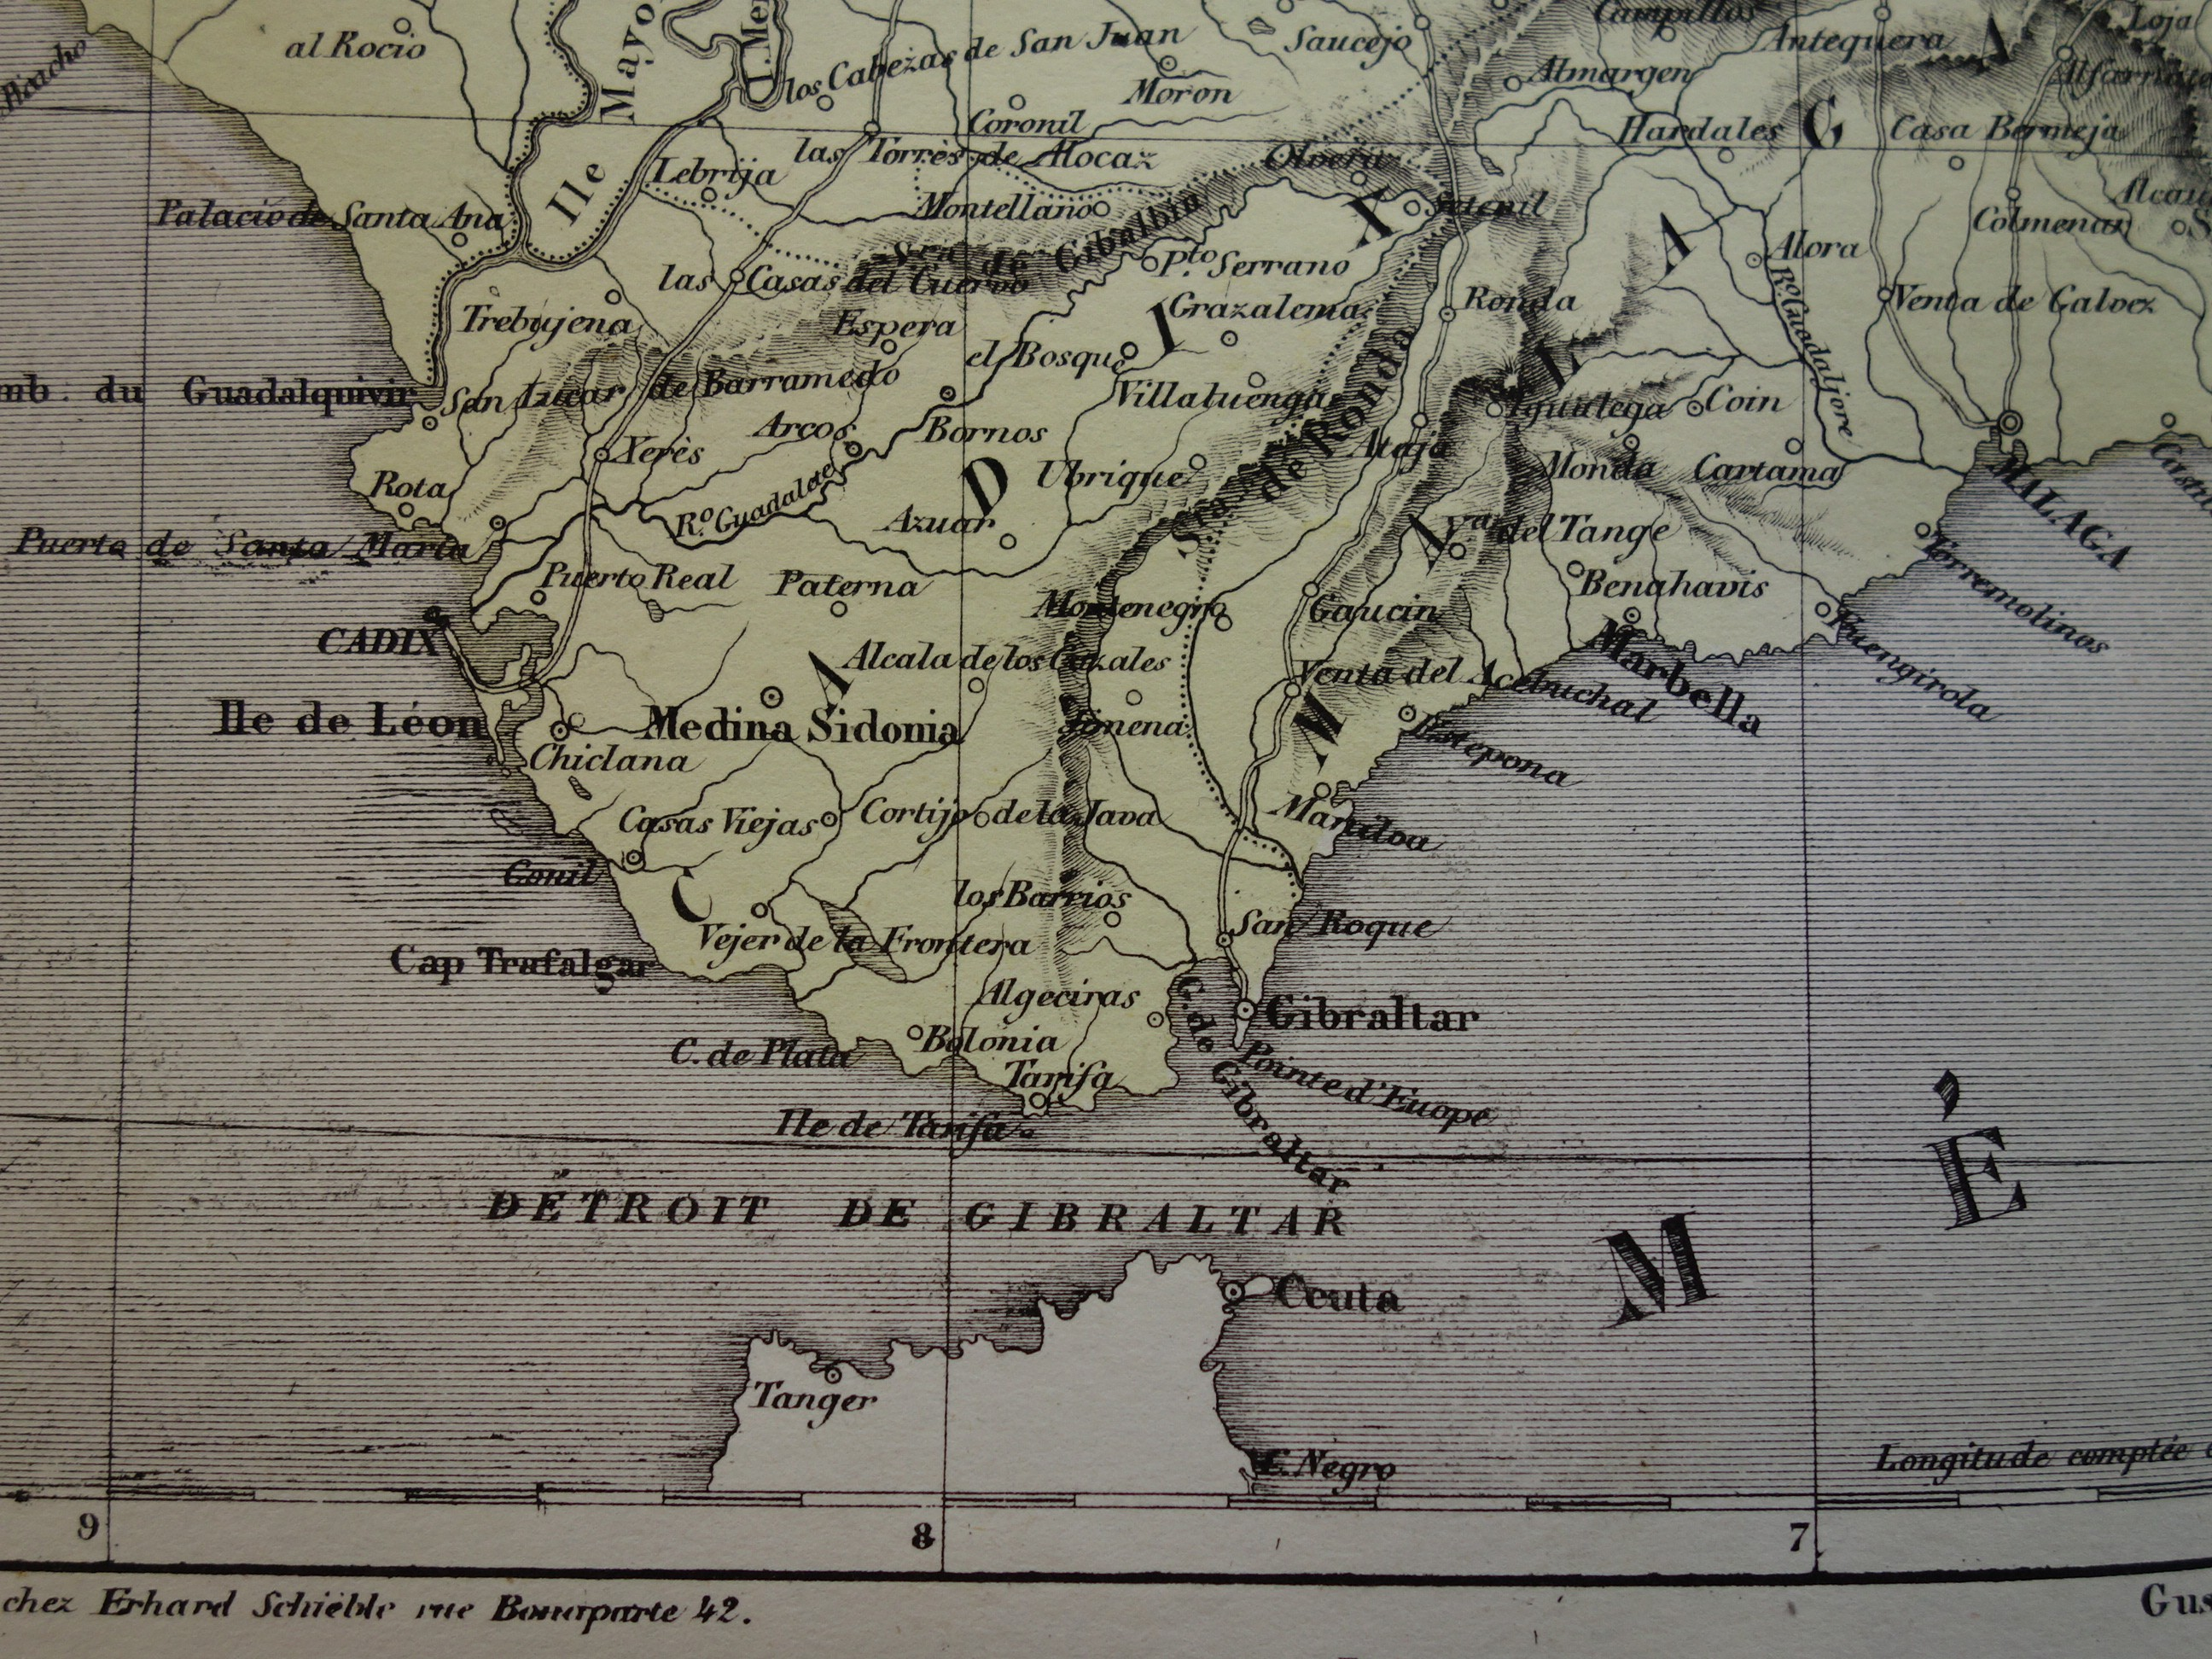 Moron Spain Map.Spain Old Map Of Southern Spain 1858 Original Antique Hand Colored